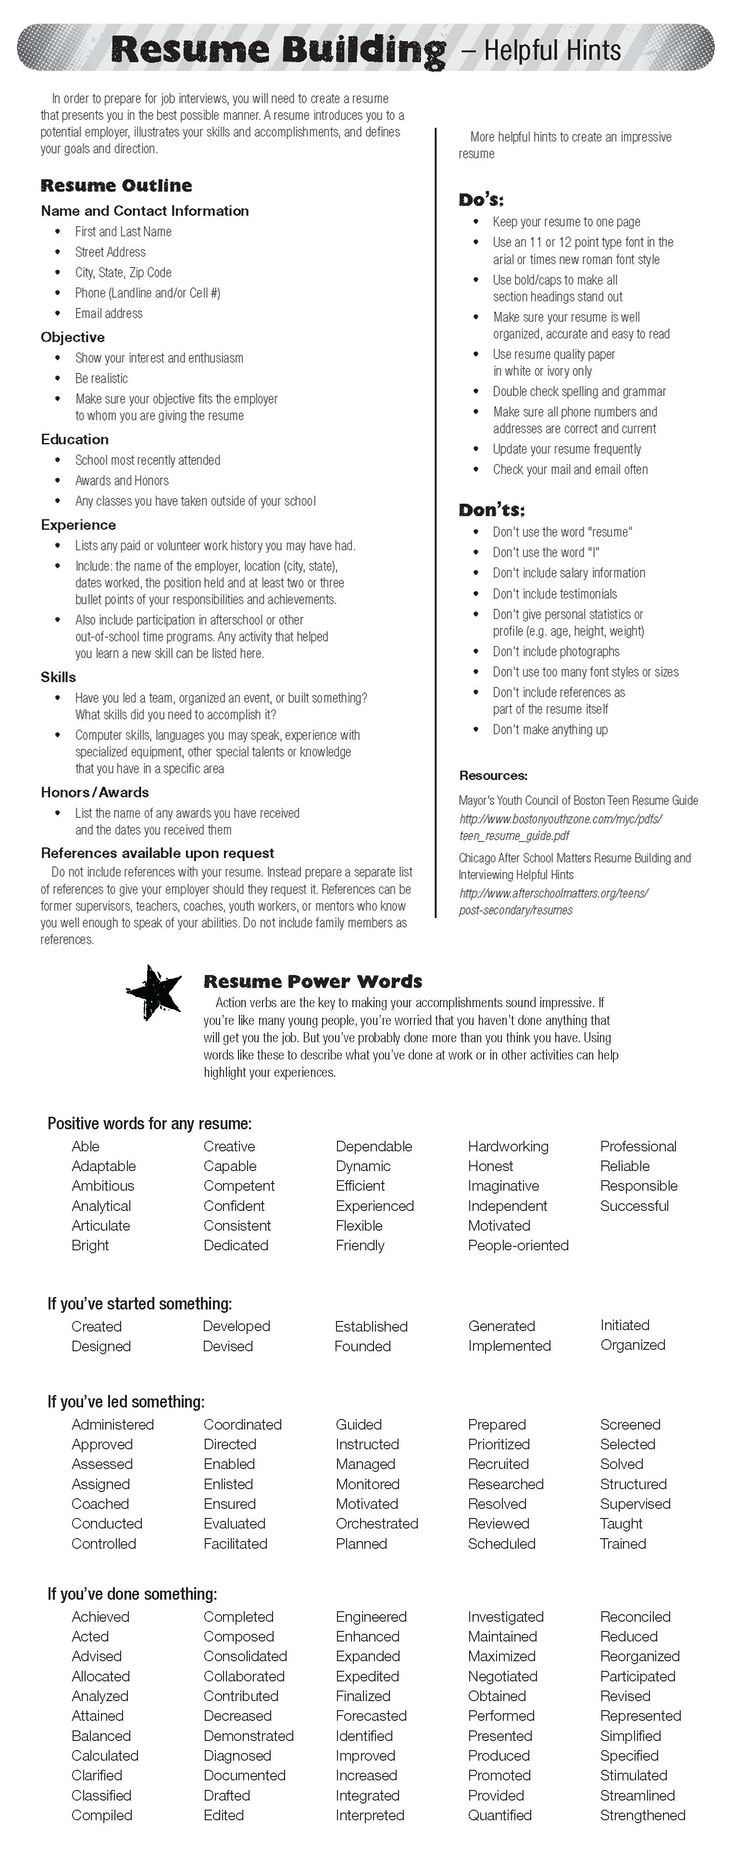 Opposenewapstandardsus  Winsome  Ideas About Resume On Pinterest  Cv Format Resume  With Entrancing Check Out Todays Resume Building Tips Resume Resumepowerwords With Delightful Hair Stylist Resume Example Also Strength And Conditioning Resume In Addition Risk Manager Resume And Graduate Resume Template As Well As General Resume Samples Additionally How To Write A General Resume From Pinterestcom With Opposenewapstandardsus  Entrancing  Ideas About Resume On Pinterest  Cv Format Resume  With Delightful Check Out Todays Resume Building Tips Resume Resumepowerwords And Winsome Hair Stylist Resume Example Also Strength And Conditioning Resume In Addition Risk Manager Resume From Pinterestcom